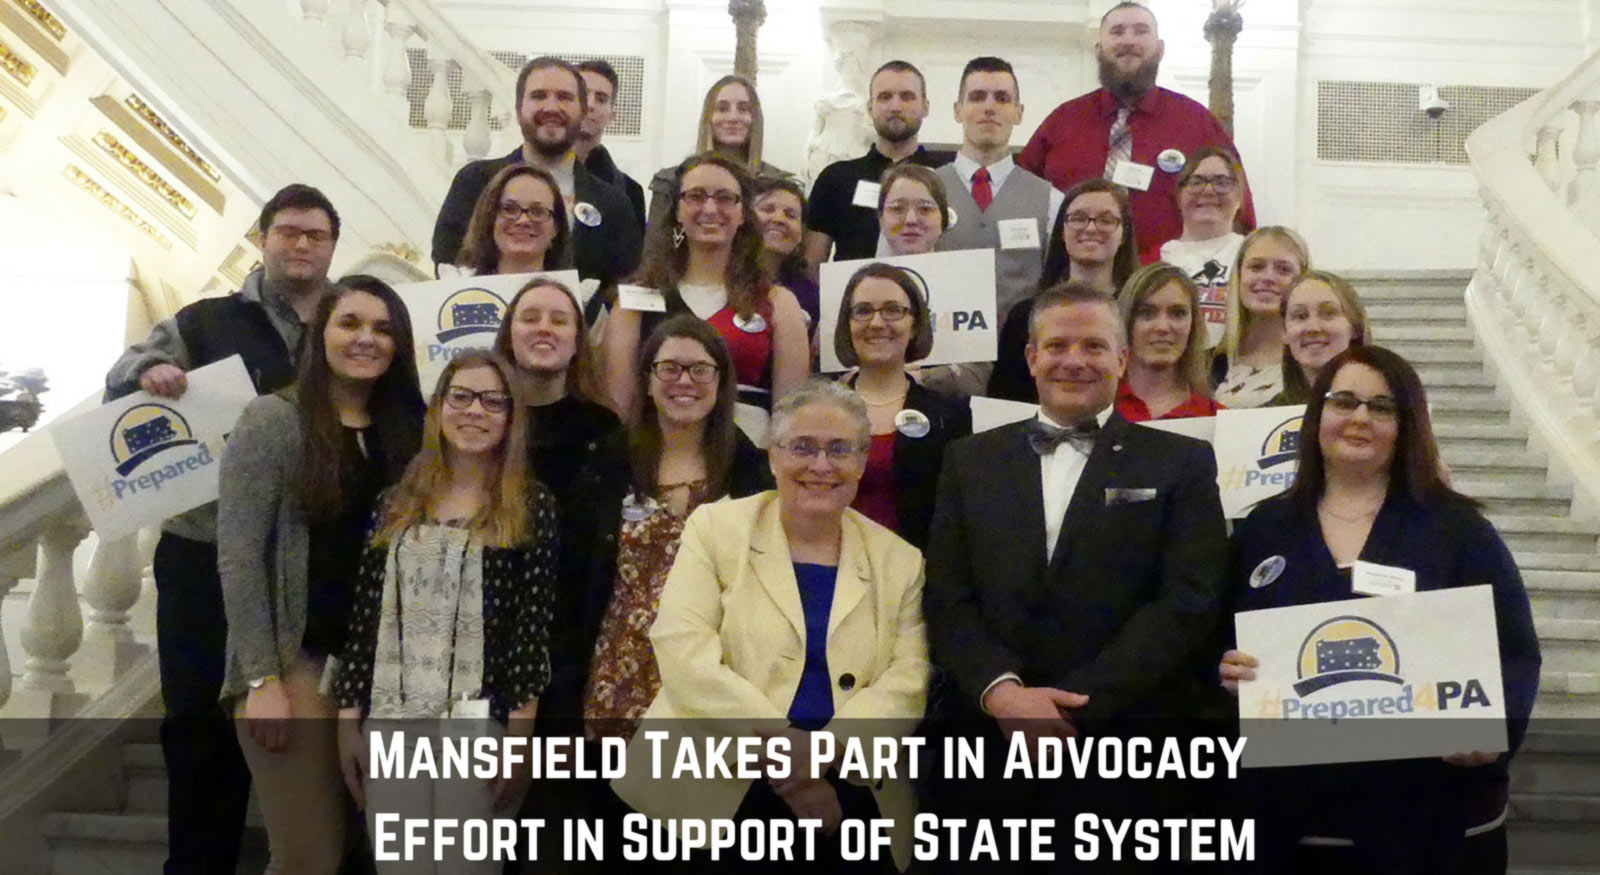 Mansfield Takes Part in Advocacy Effort in Support of State System